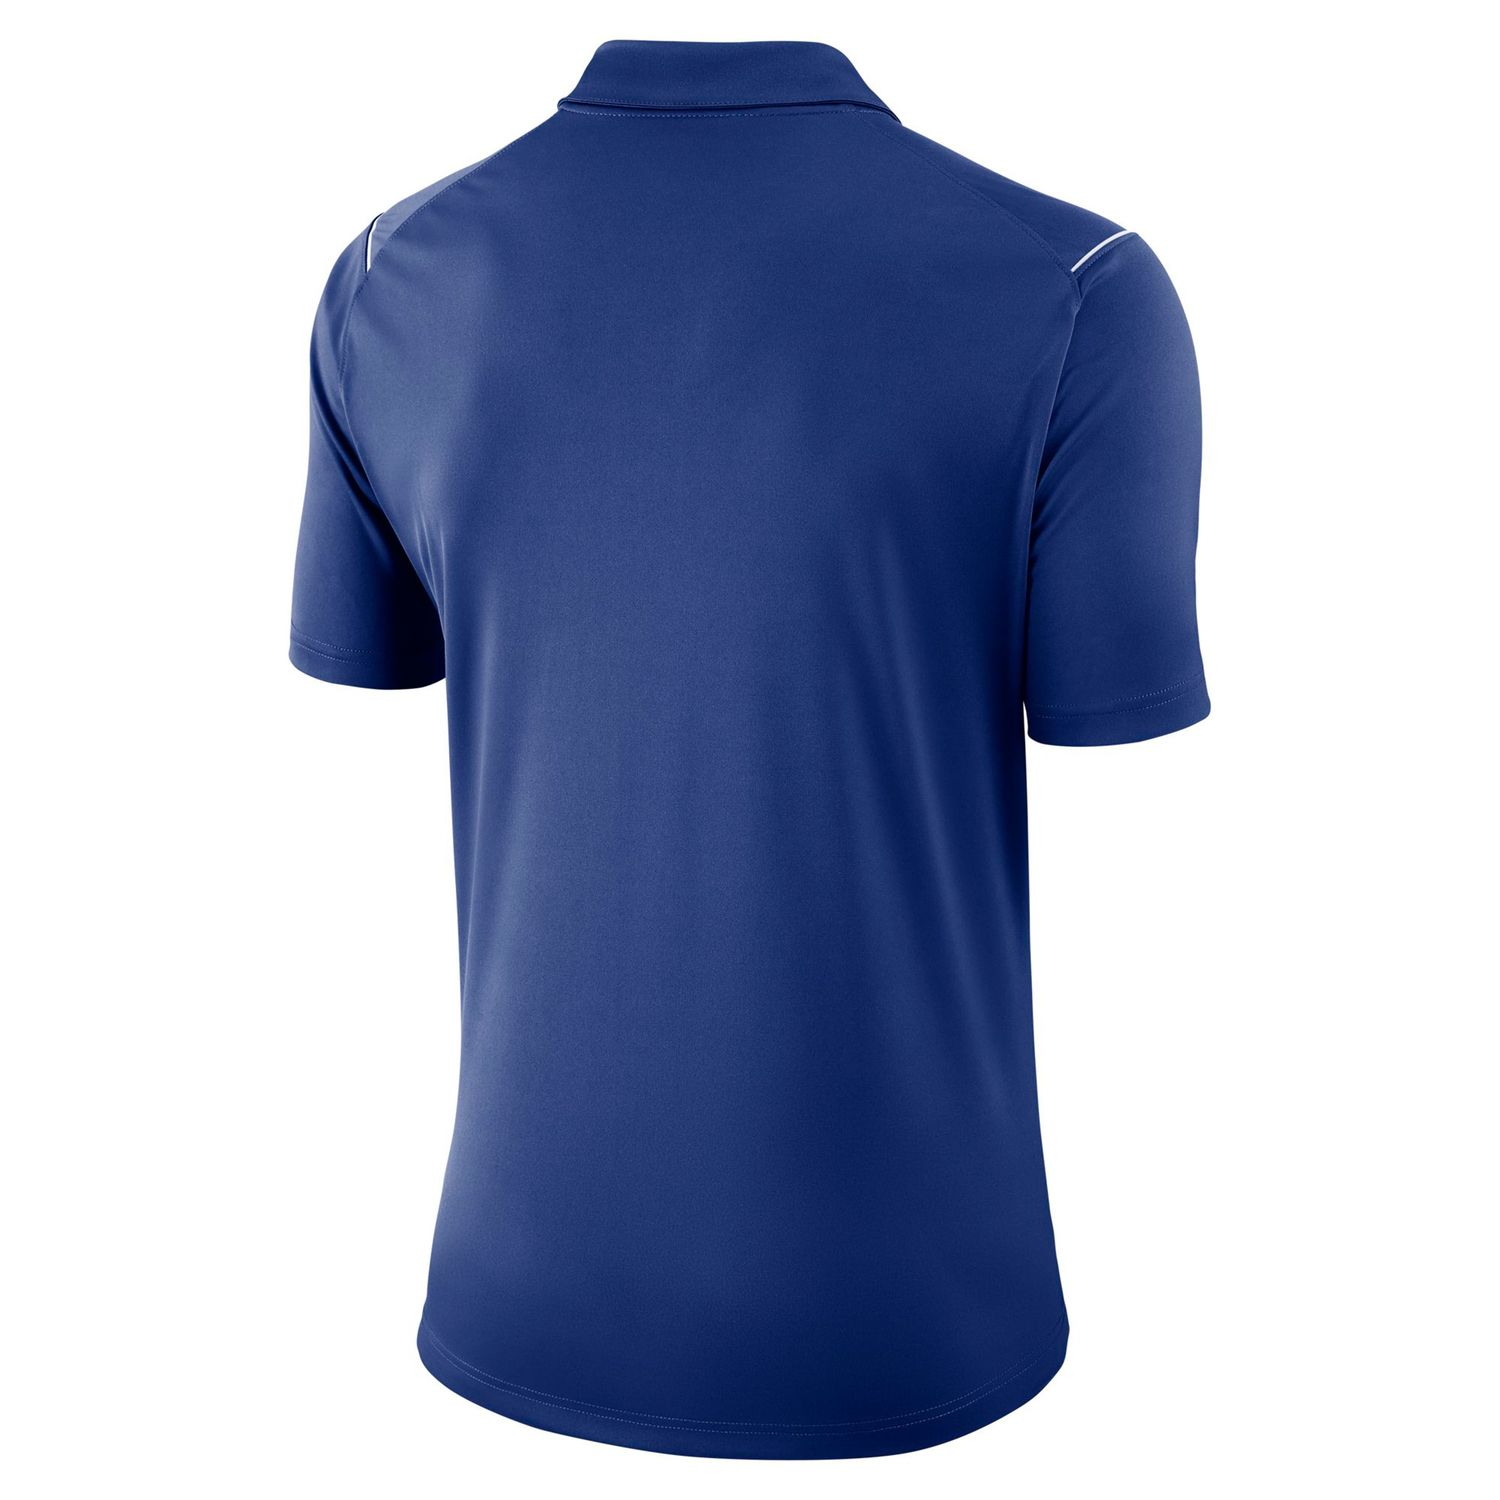 31149c0a Mens Nike Polo Tops, Clothing | Kohl's